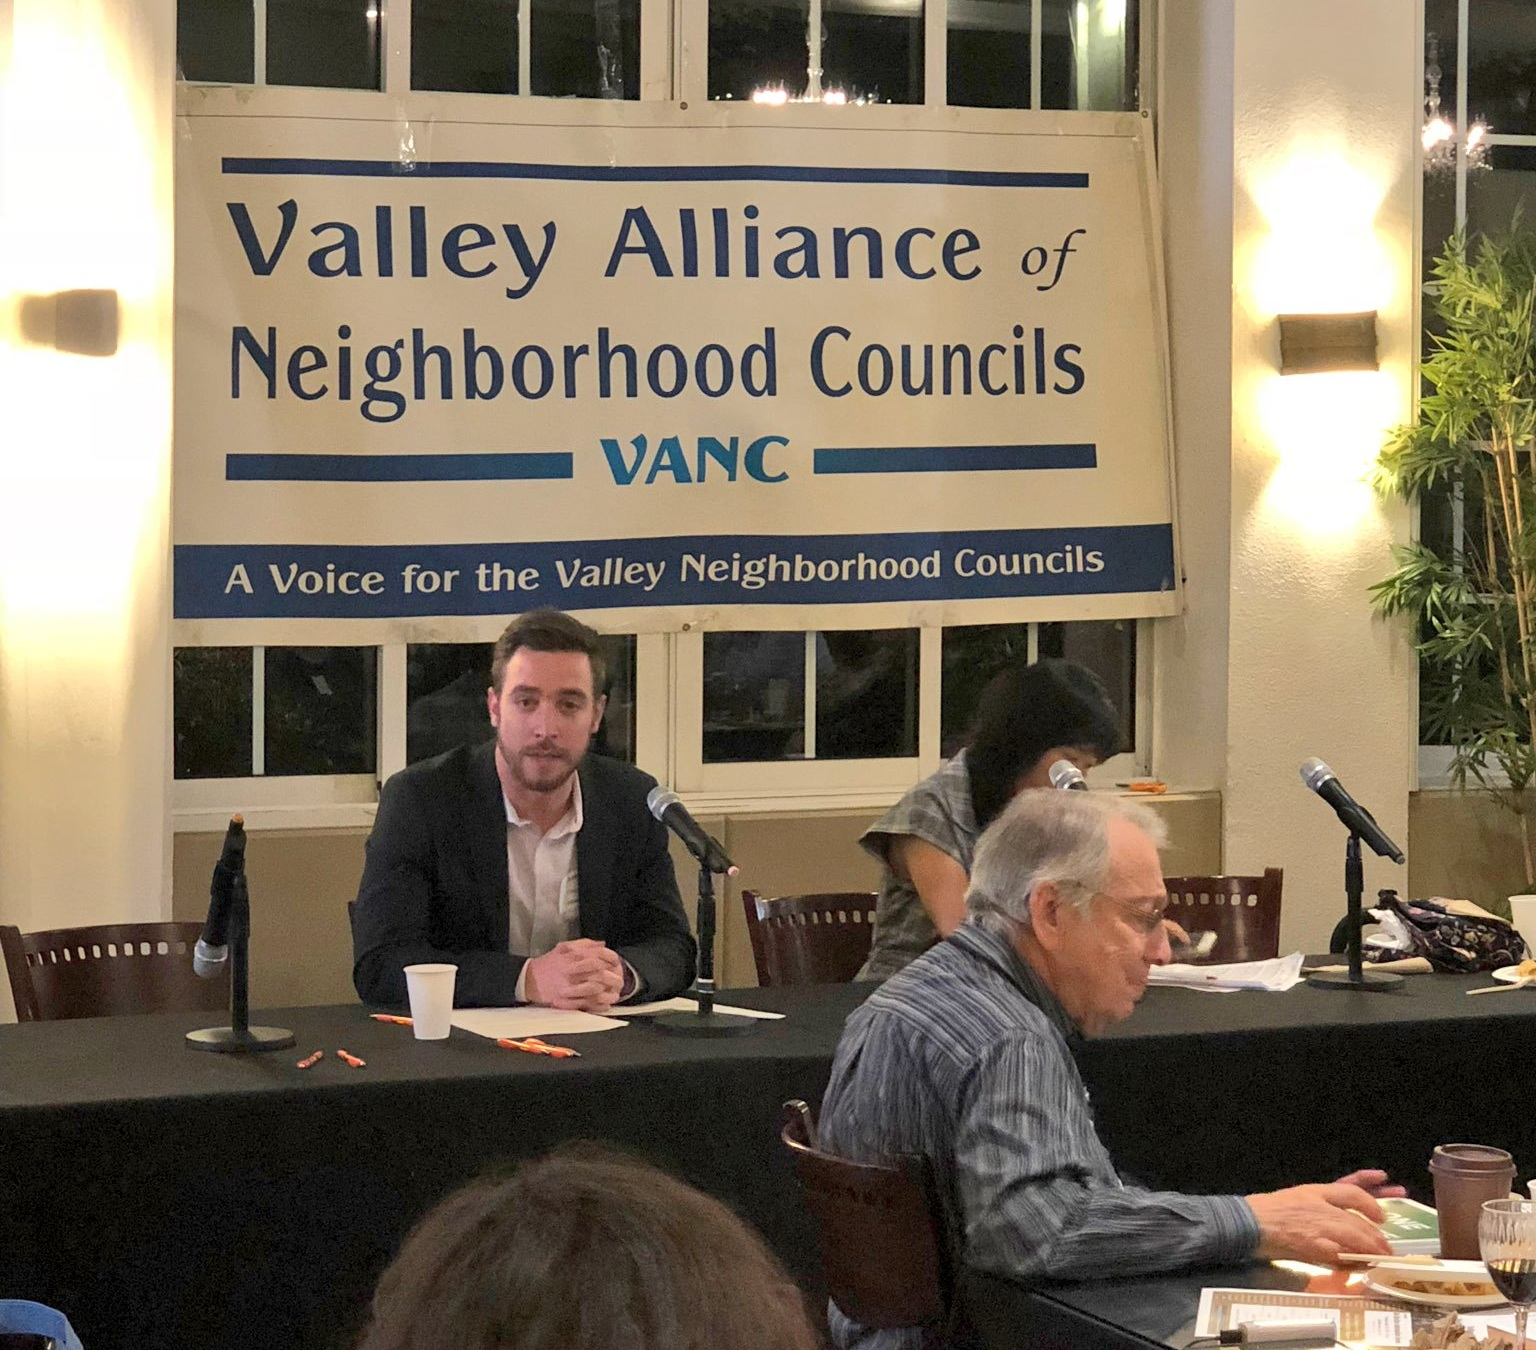 Josh is running for City Council to bring our community's voice back to City Hall. He will fight for a renewed focus on public safety, improving our city services, safeguarding our quality of life, and effectively managing the homelessness crisis in the North Valley.